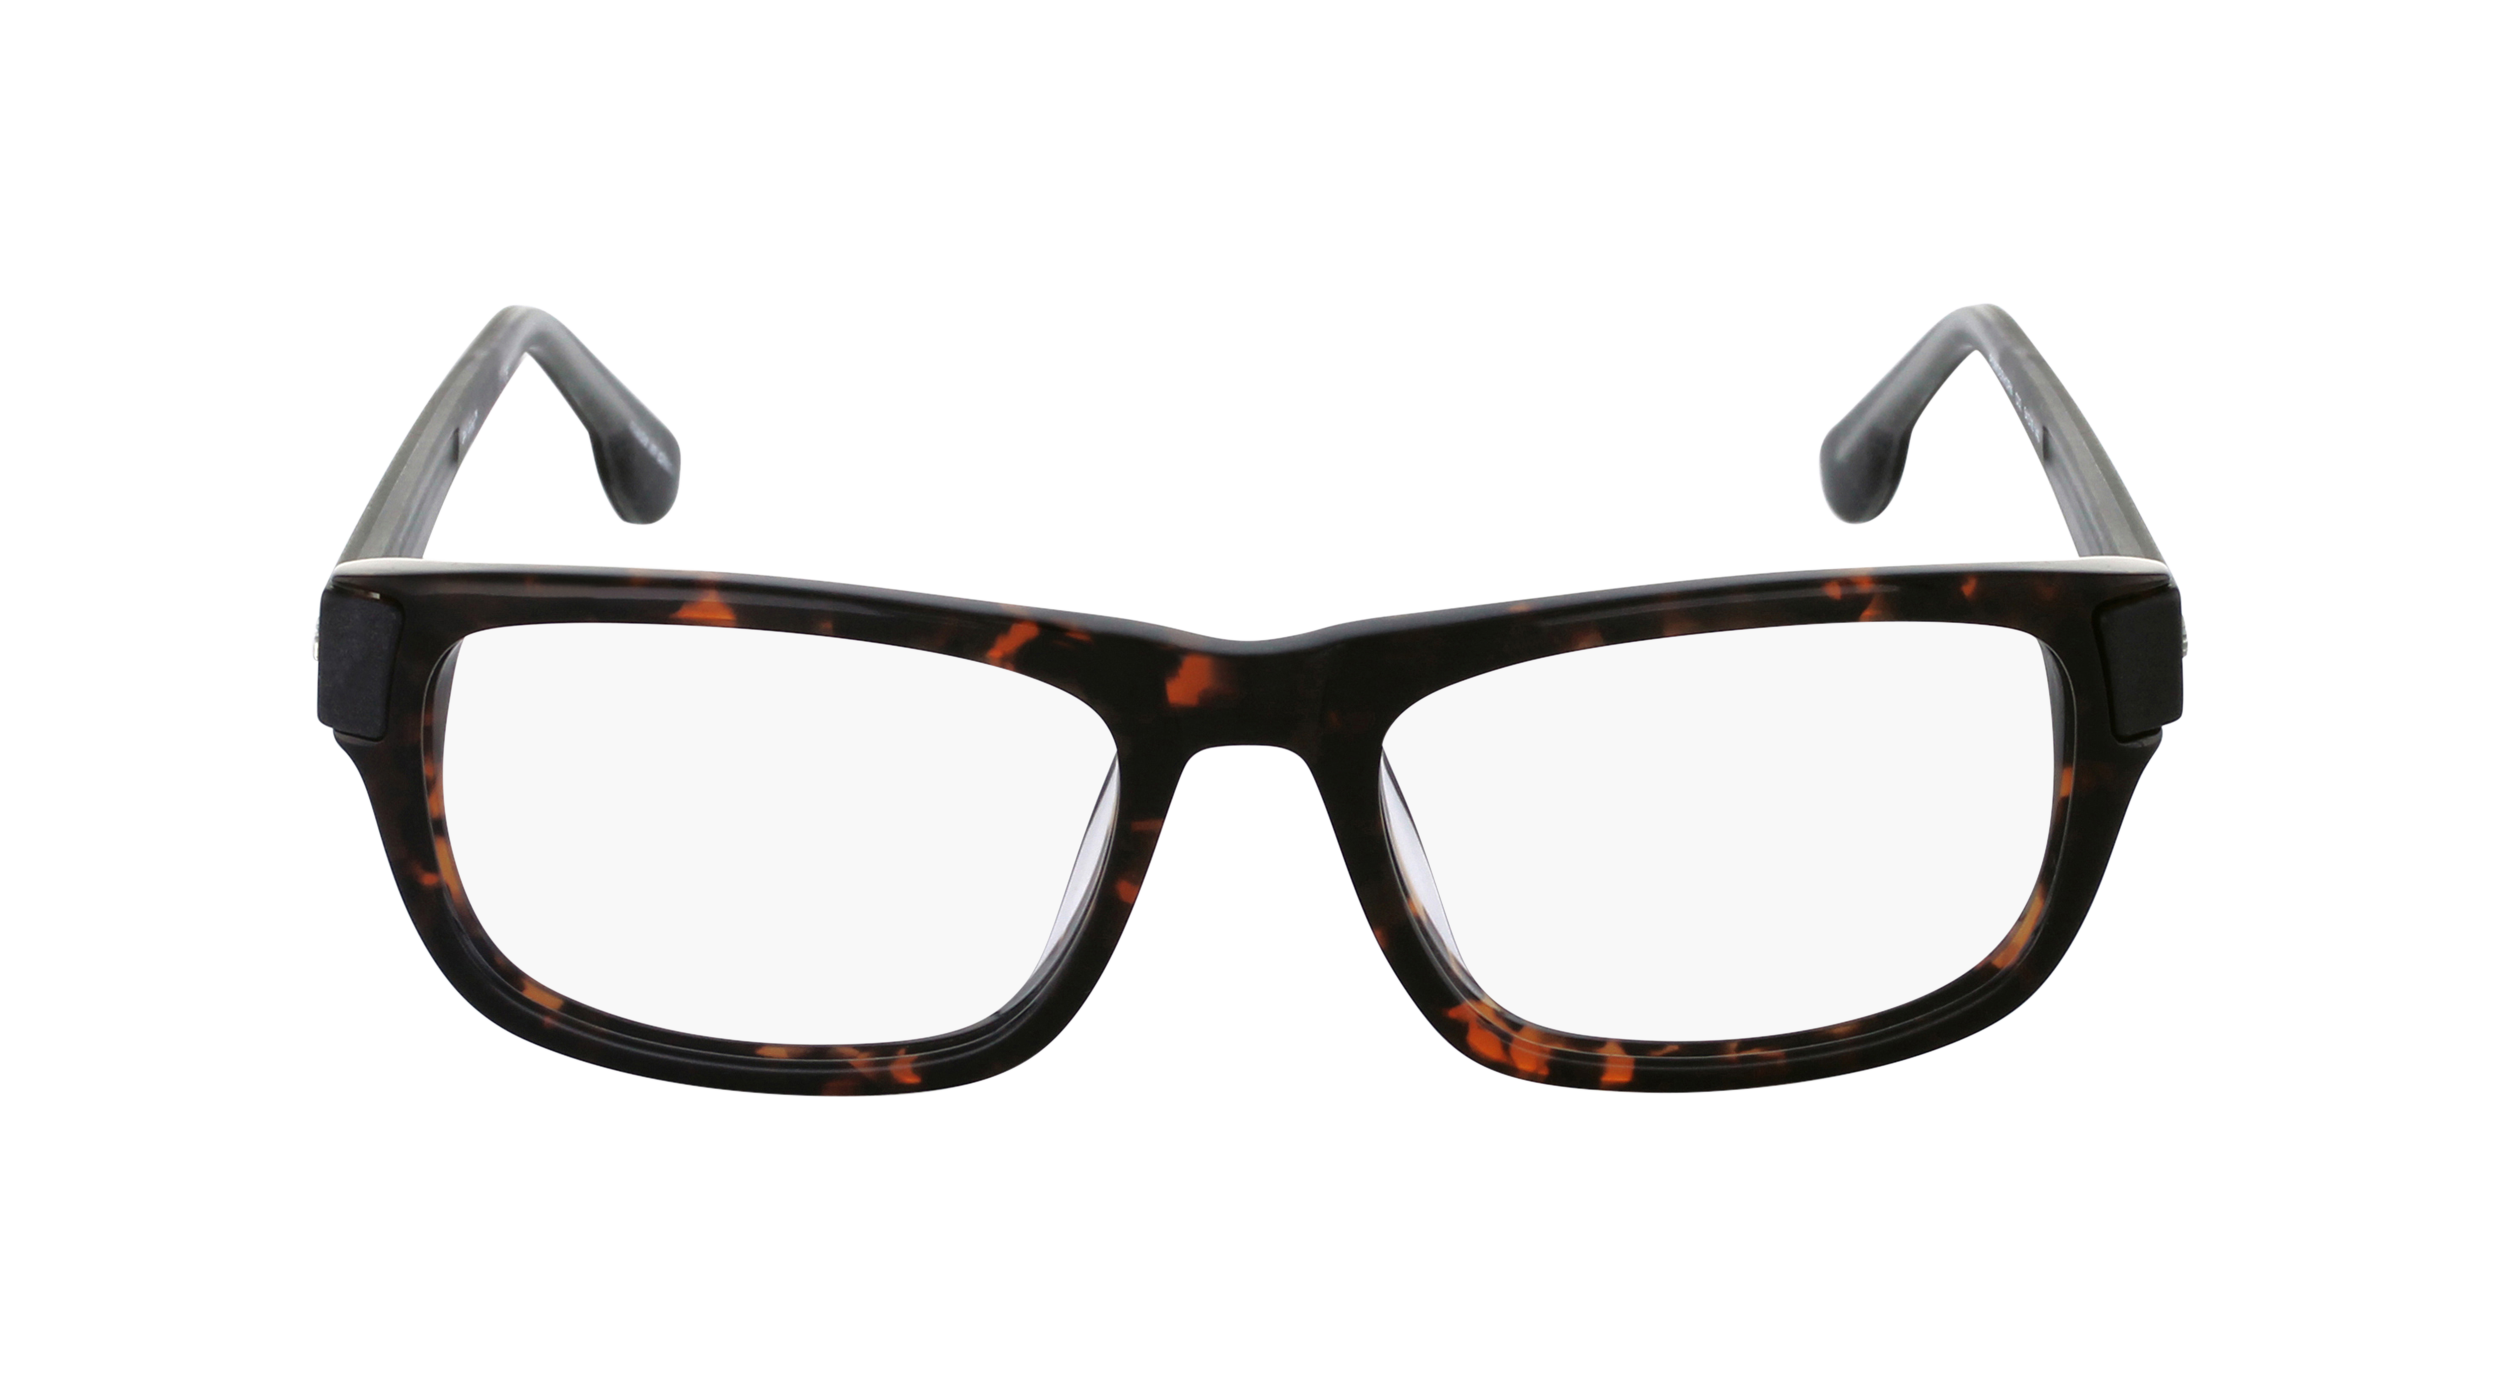 Png sunglasses. Glasses images free download